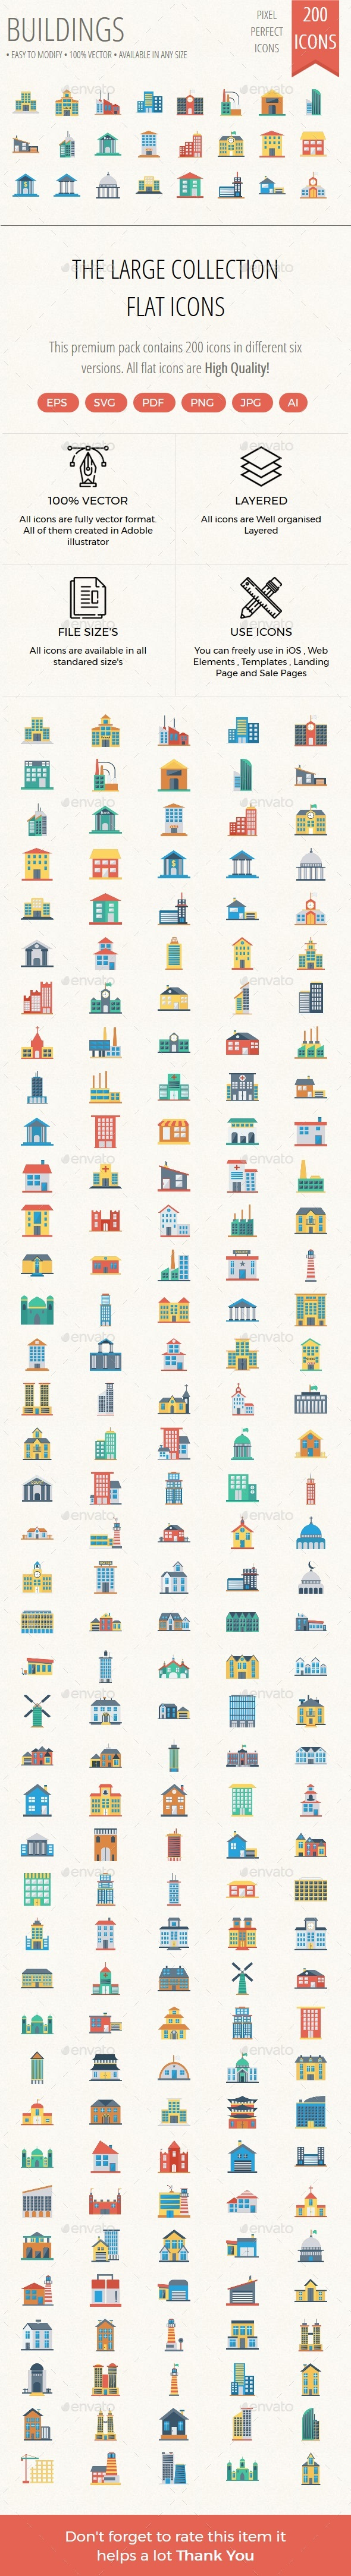 200 Building Flat icons - Icons